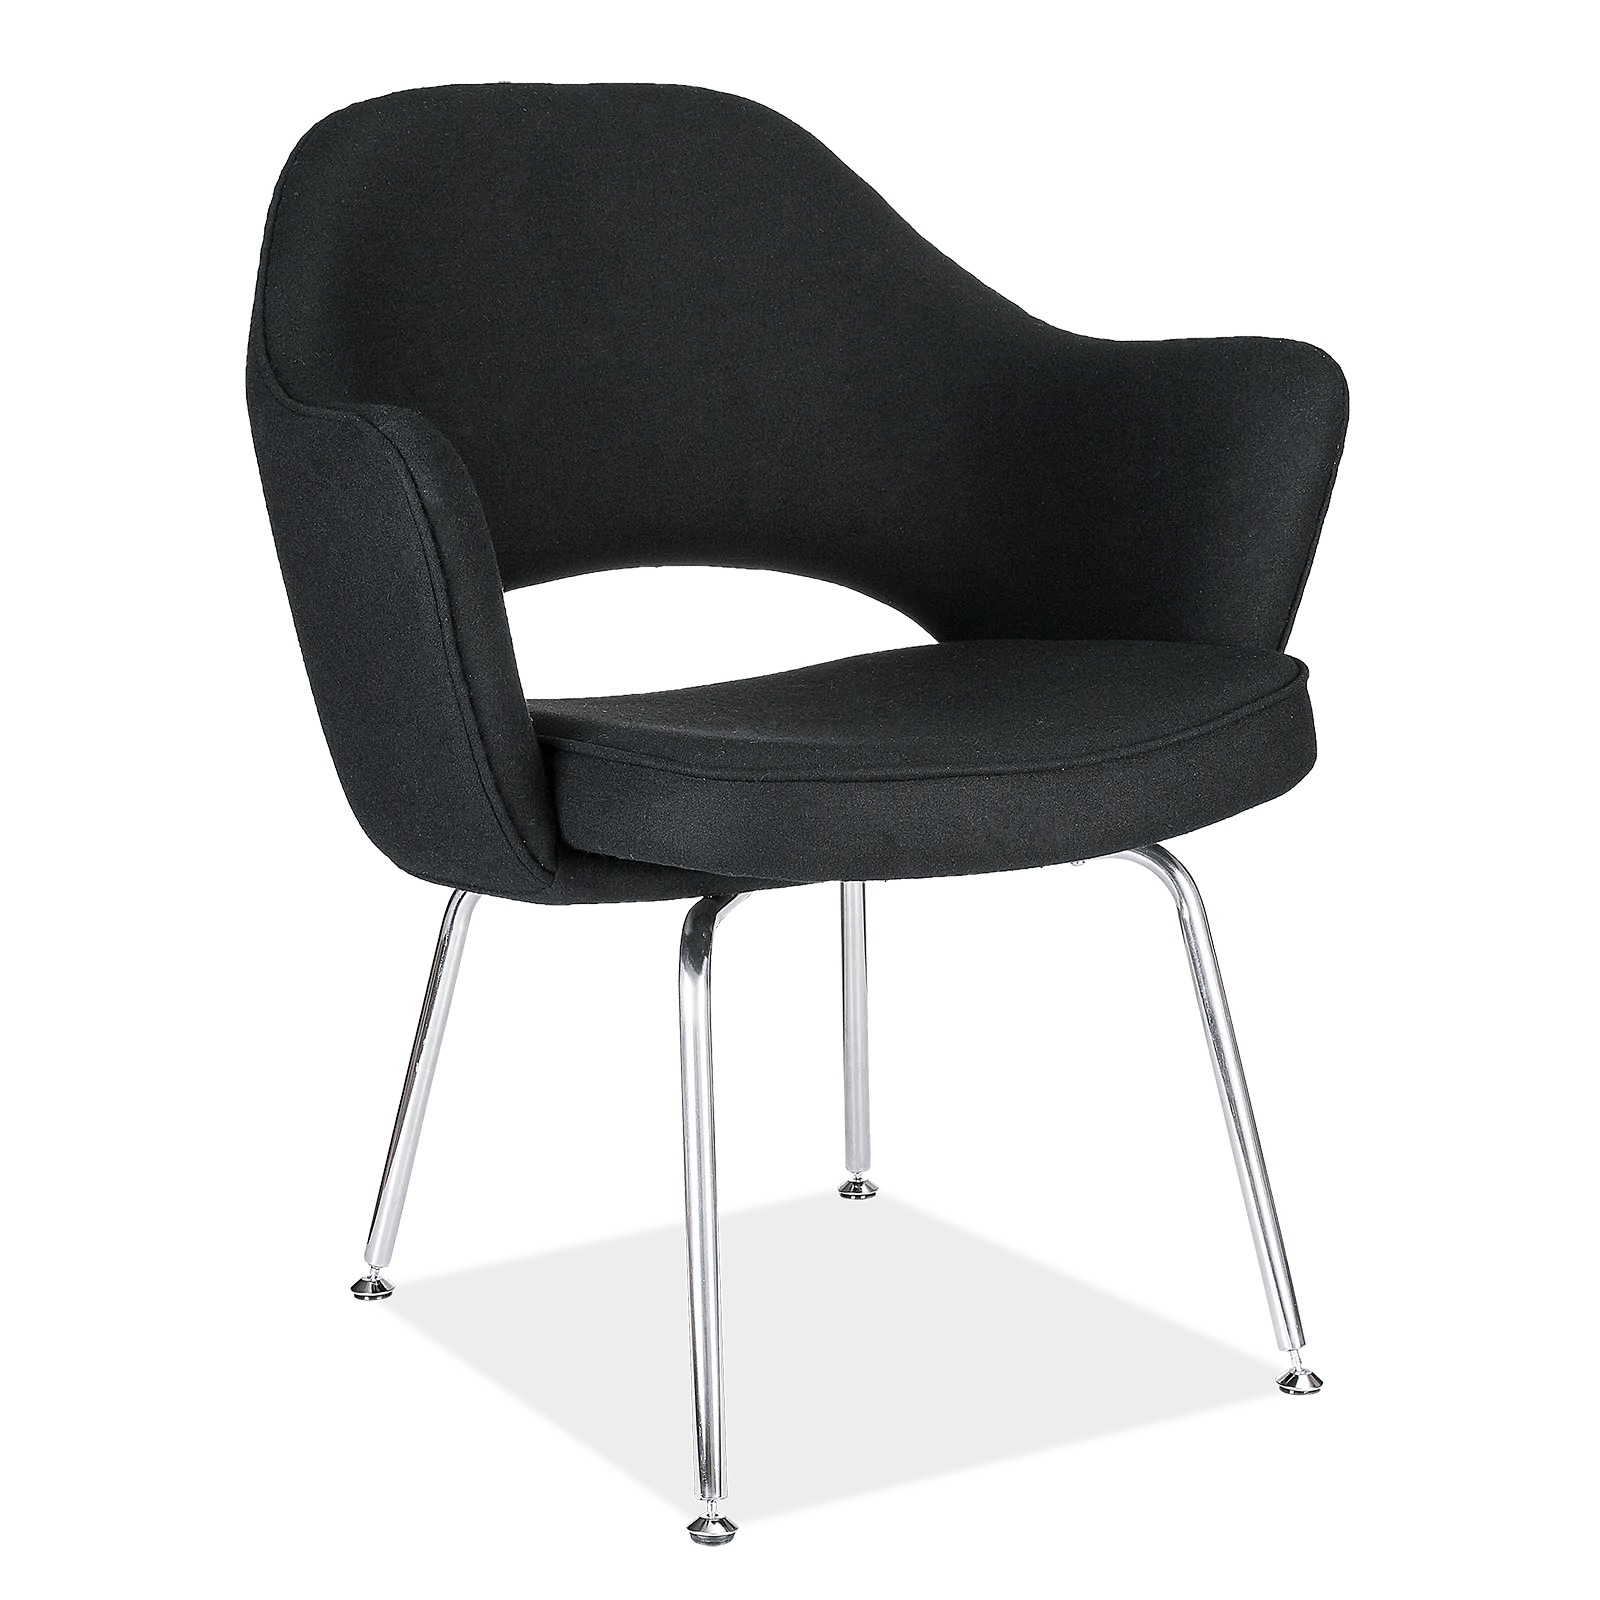 Dieter Rams Sessel Gebraucht Bubble Club Sessel Perfect Bubble Club Sessel With Bubble Club